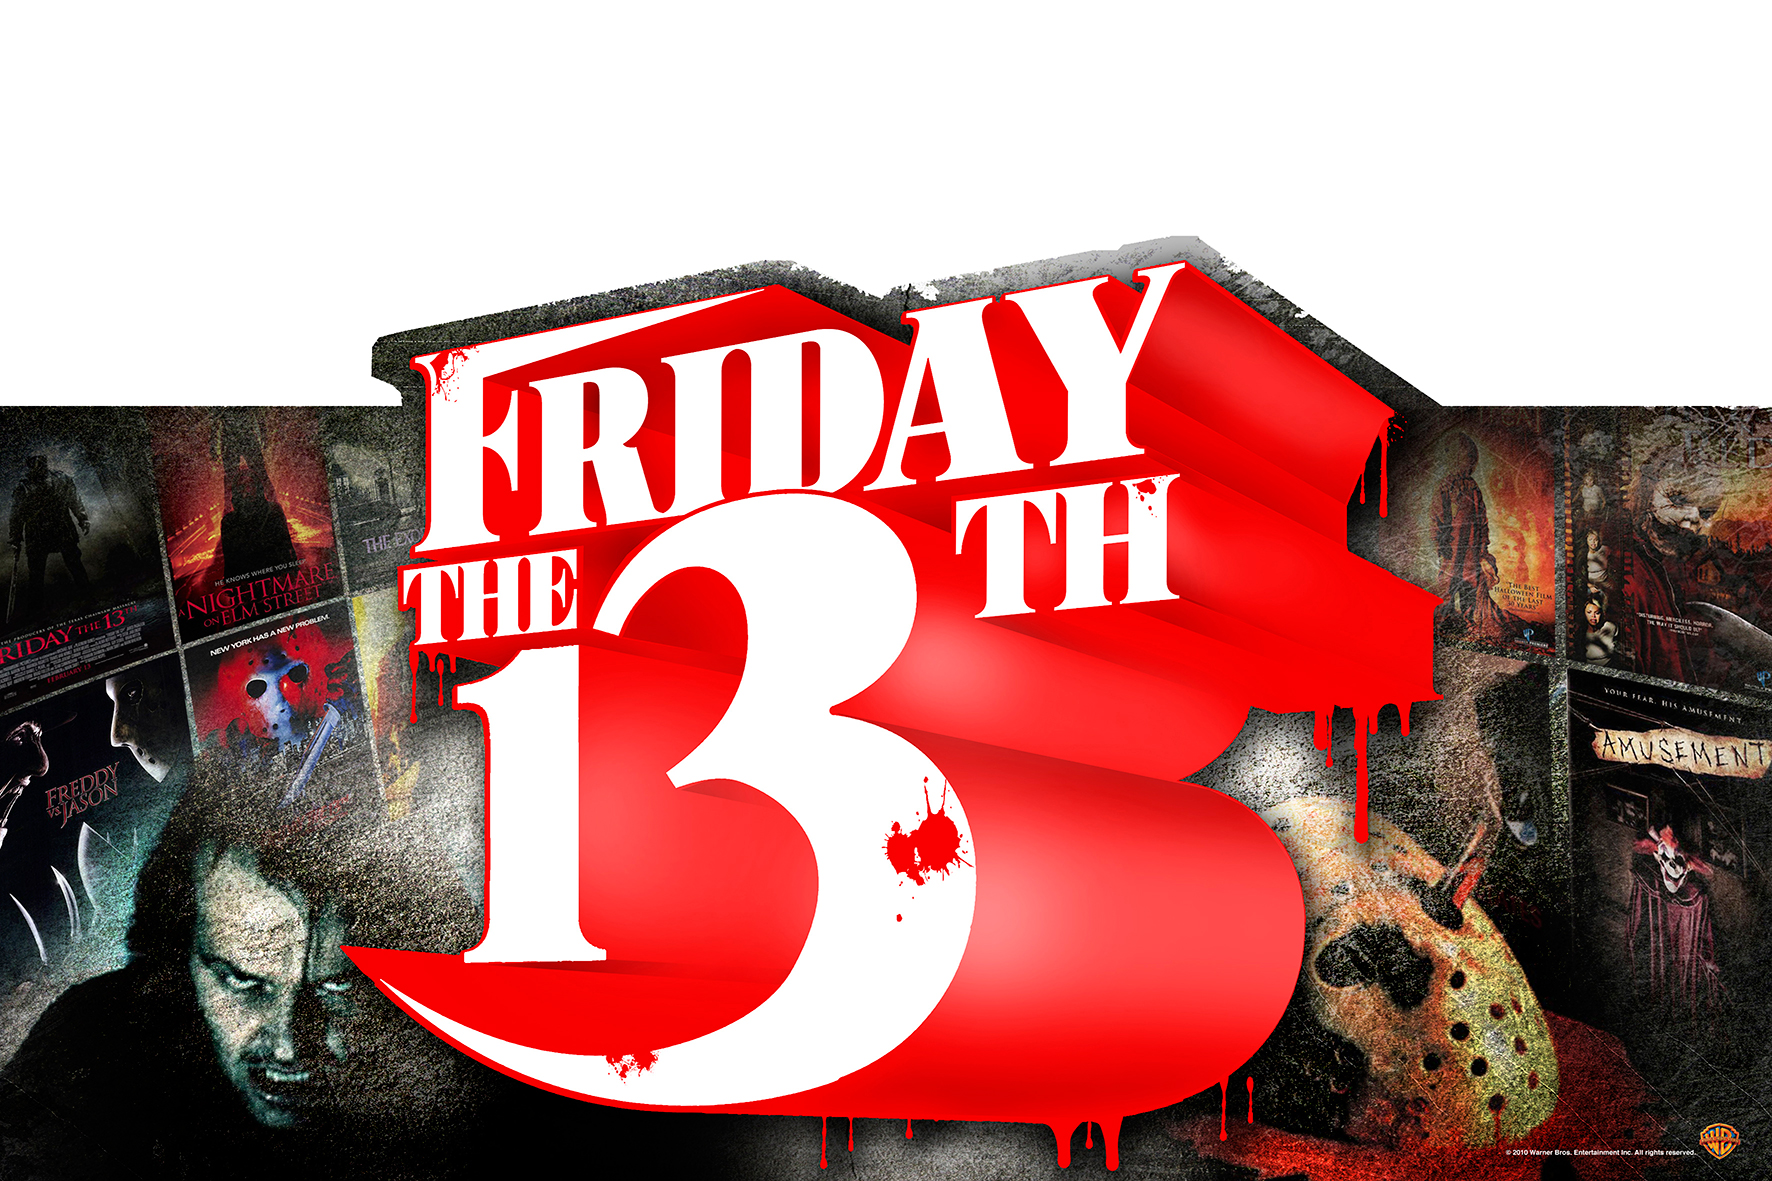 """Friday the 13th"" title and header treatments."